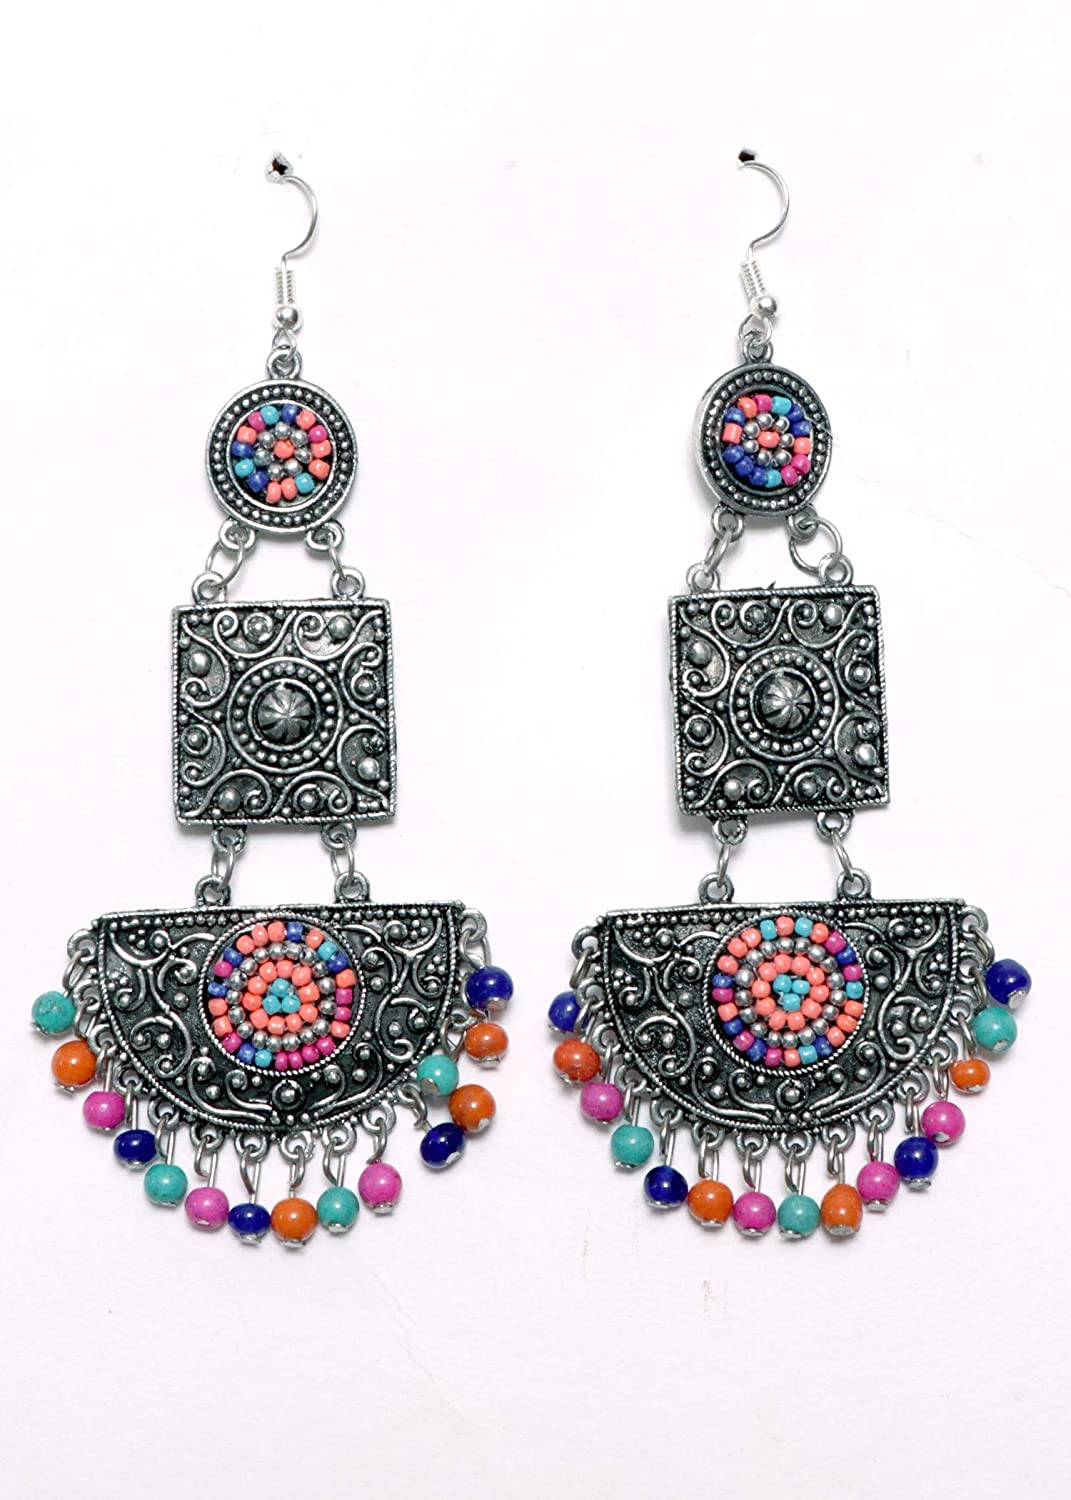 Silver Oxidized Half Moon Shaped Dangling Jhumki Indian Traditional Jewellery for Stylish Women and Girls by SP Jewels